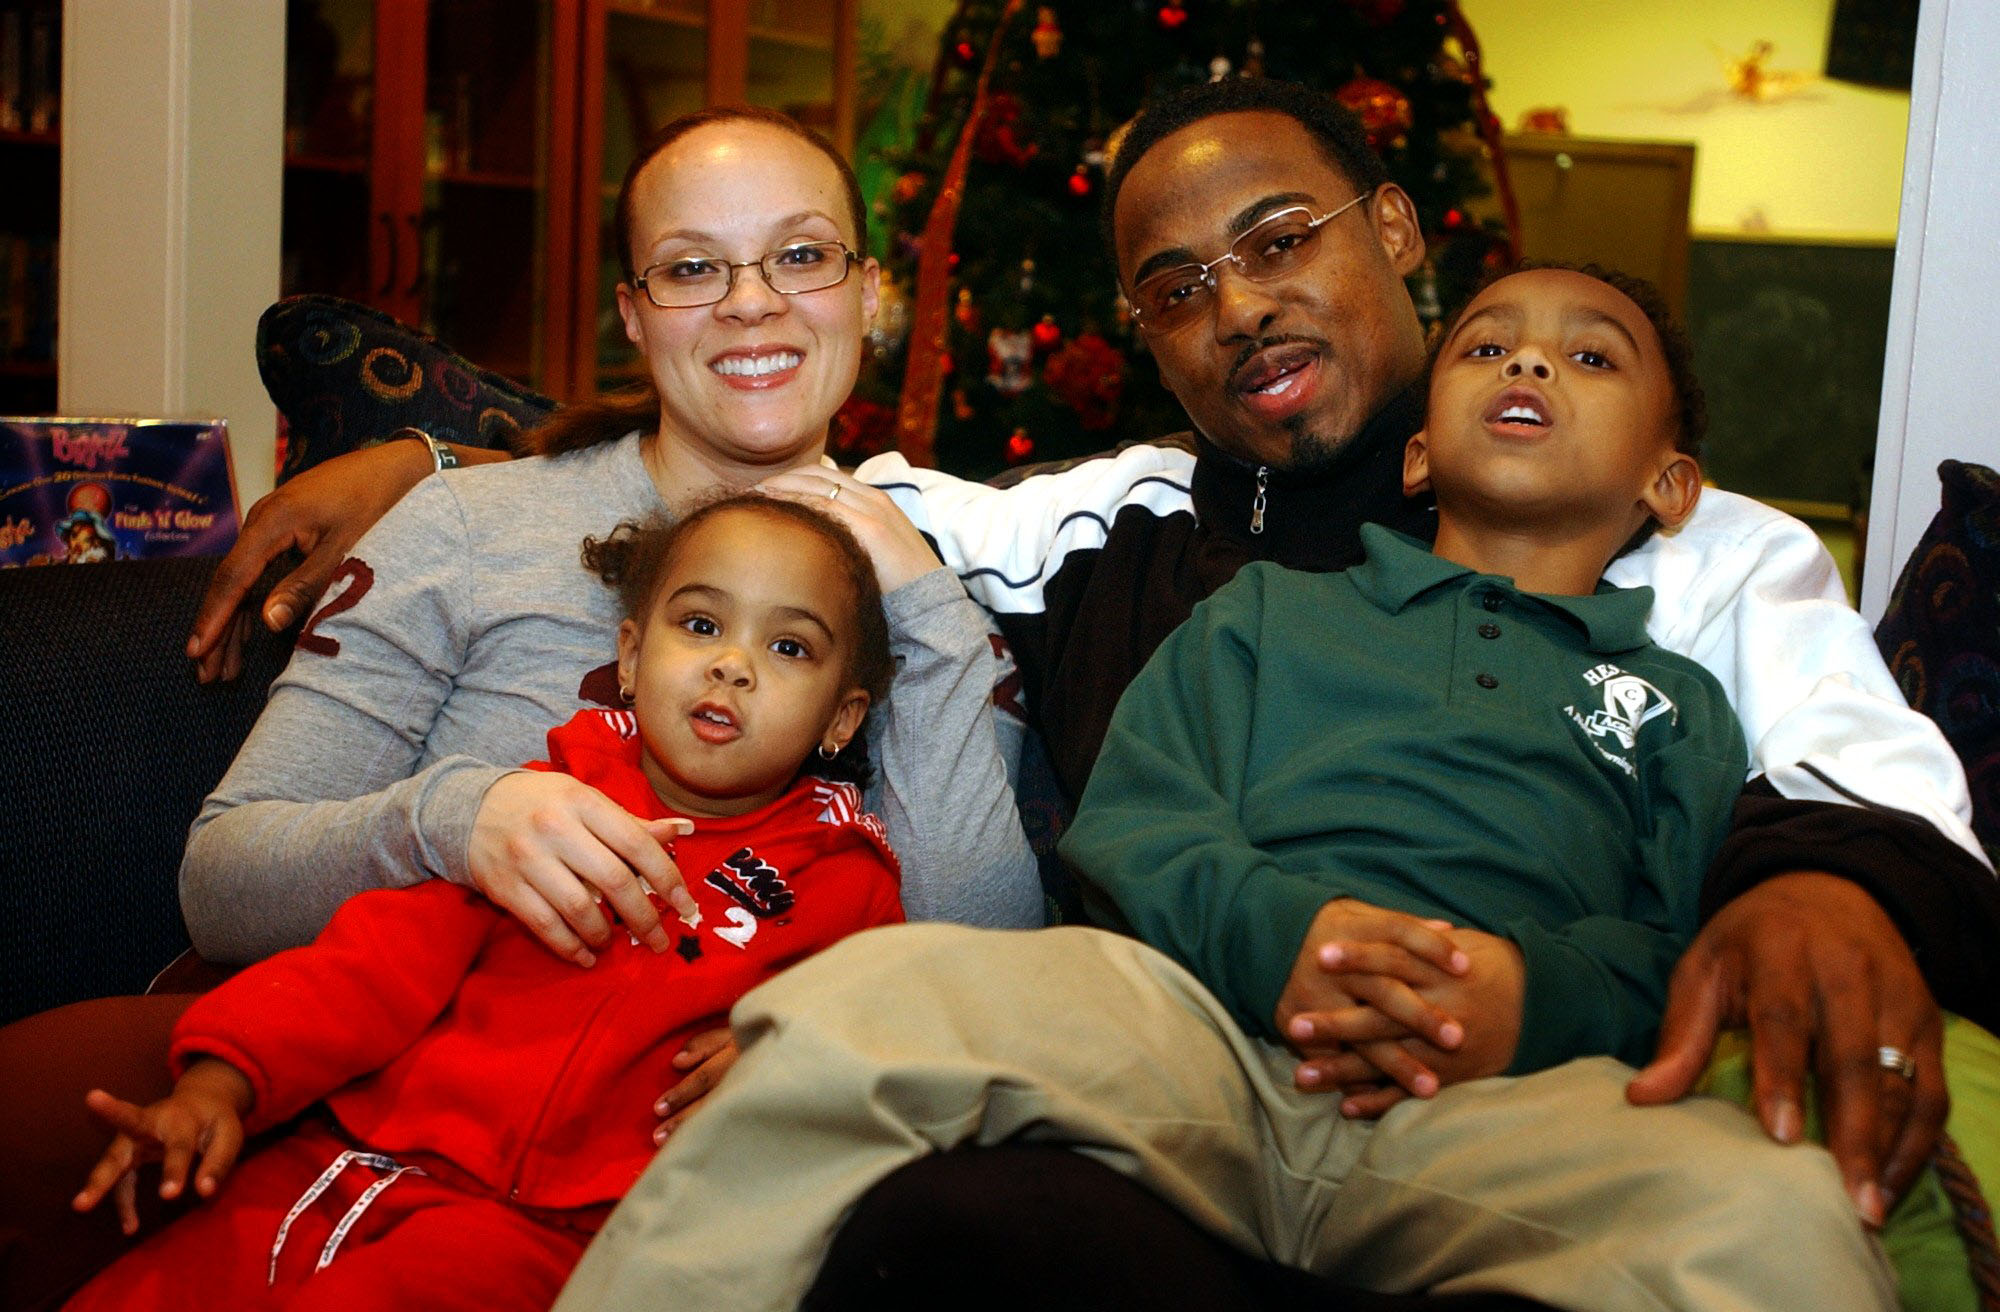 Connie and Brian Dawkins pose for a photo in January 2003 with children Brian Jr. (right), 6, and Brionni, 3.